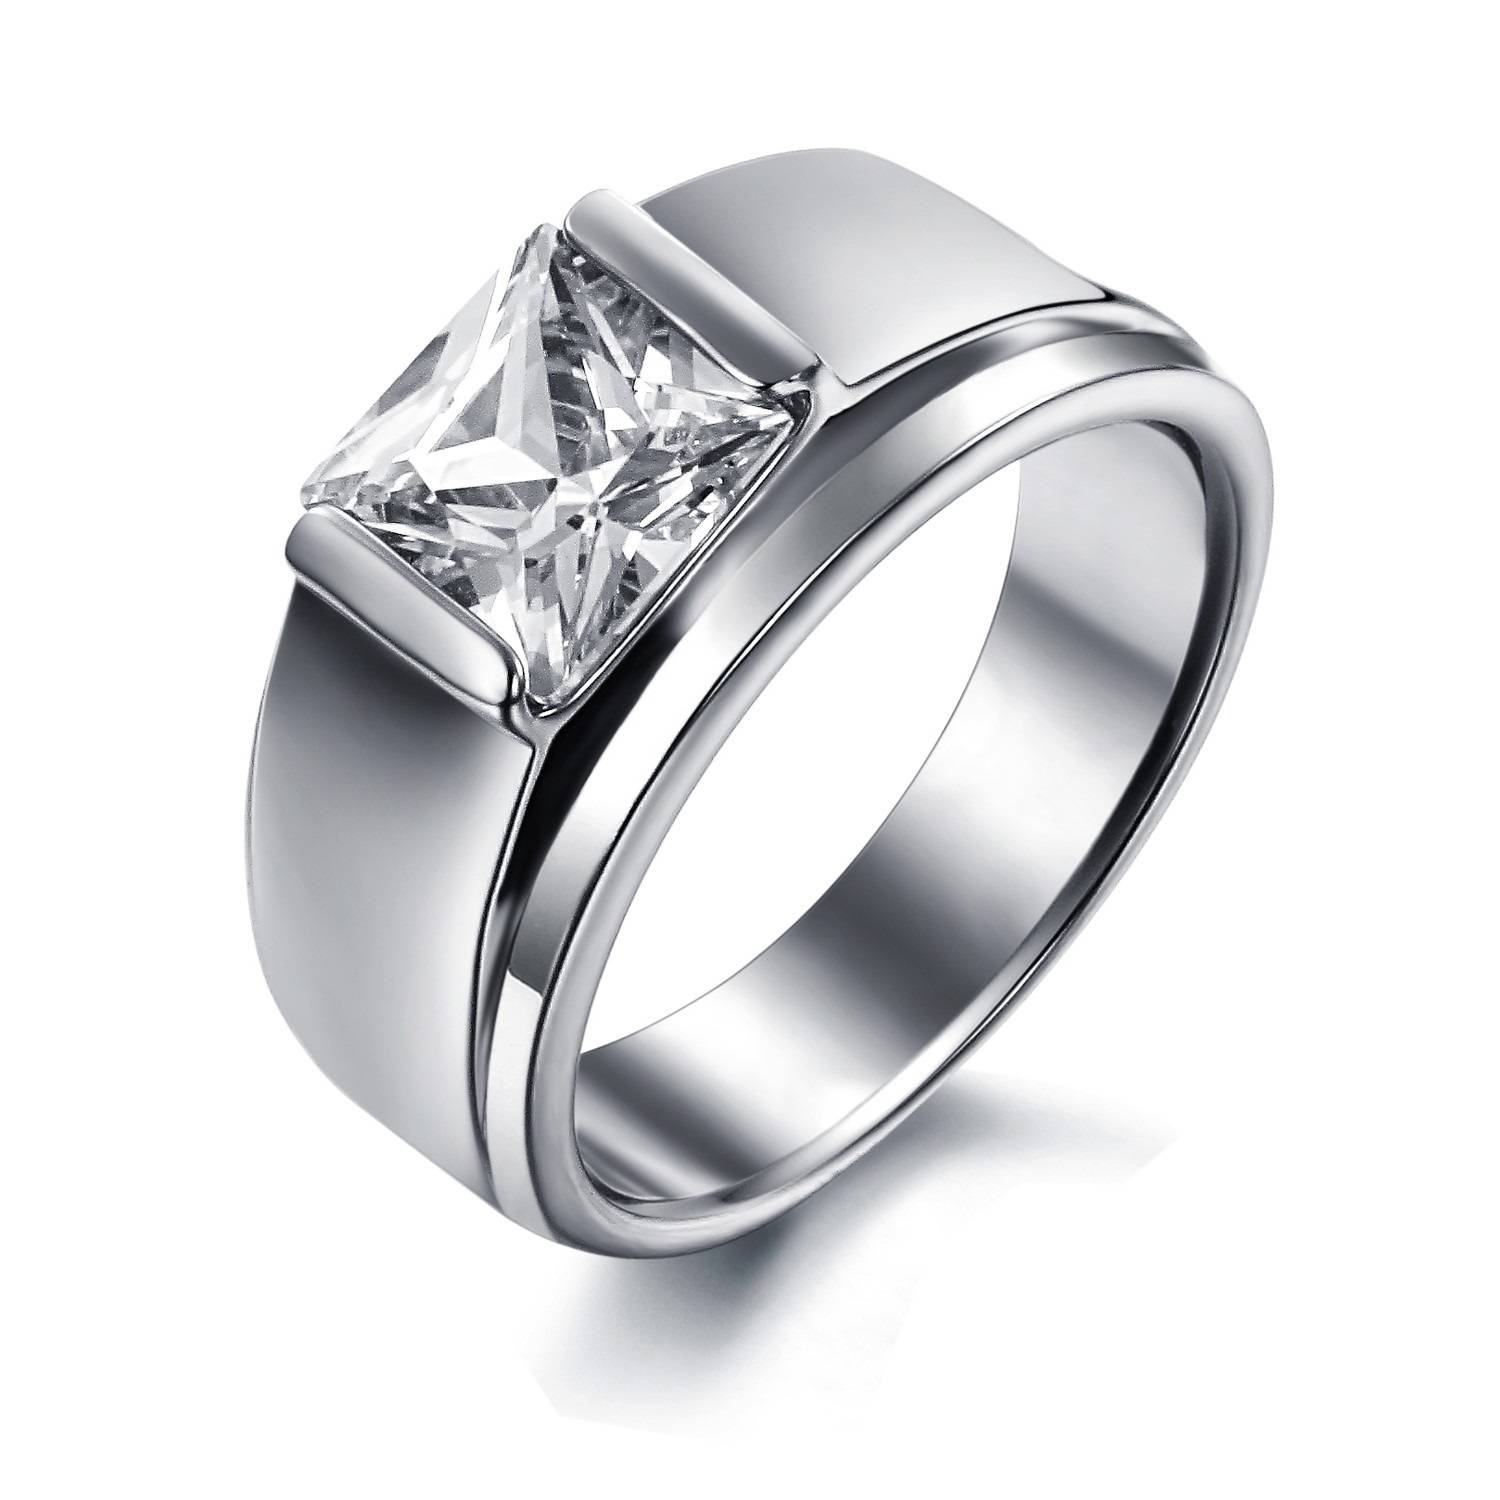 Women's Stainless Steel Engagement Promise Wedding Band Ring With Regard To Womens Wedding Rings (View 13 of 15)